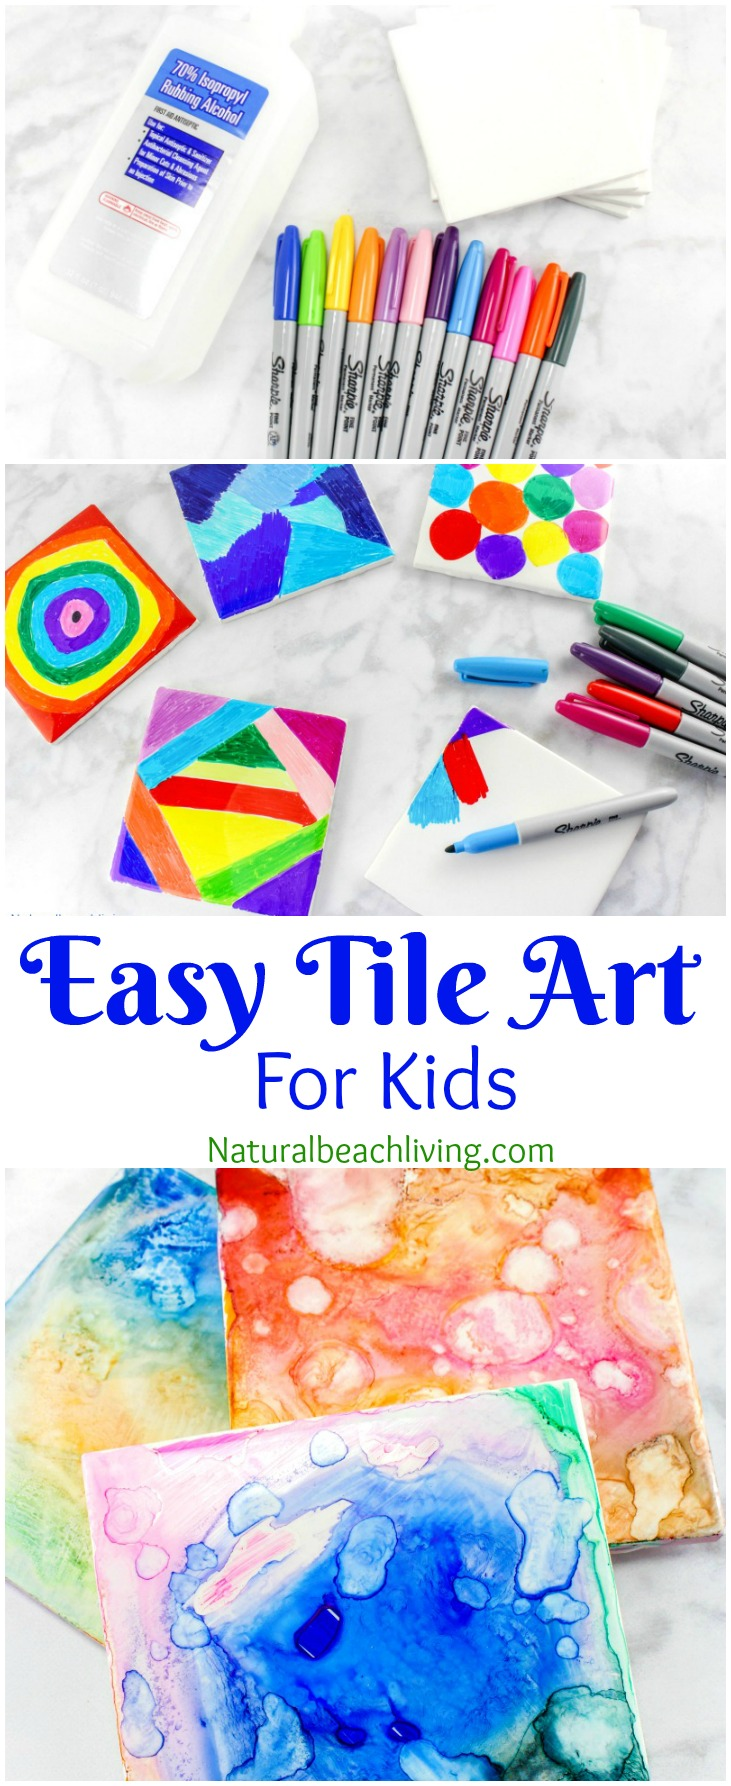 Tile Art for Kids, Tile Art That Everyone Will Enjoy, Easy Sharpie Art for Kids is the coolest, perfect Tile Crafts for kids that is a Fun Process Art, Sharpie Crafts, Kid made gift idea, Tie Dye arts and crafts ideas, Crafts for kids, Kid Art makes a beautiful handmade gift idea, art activities for all ages